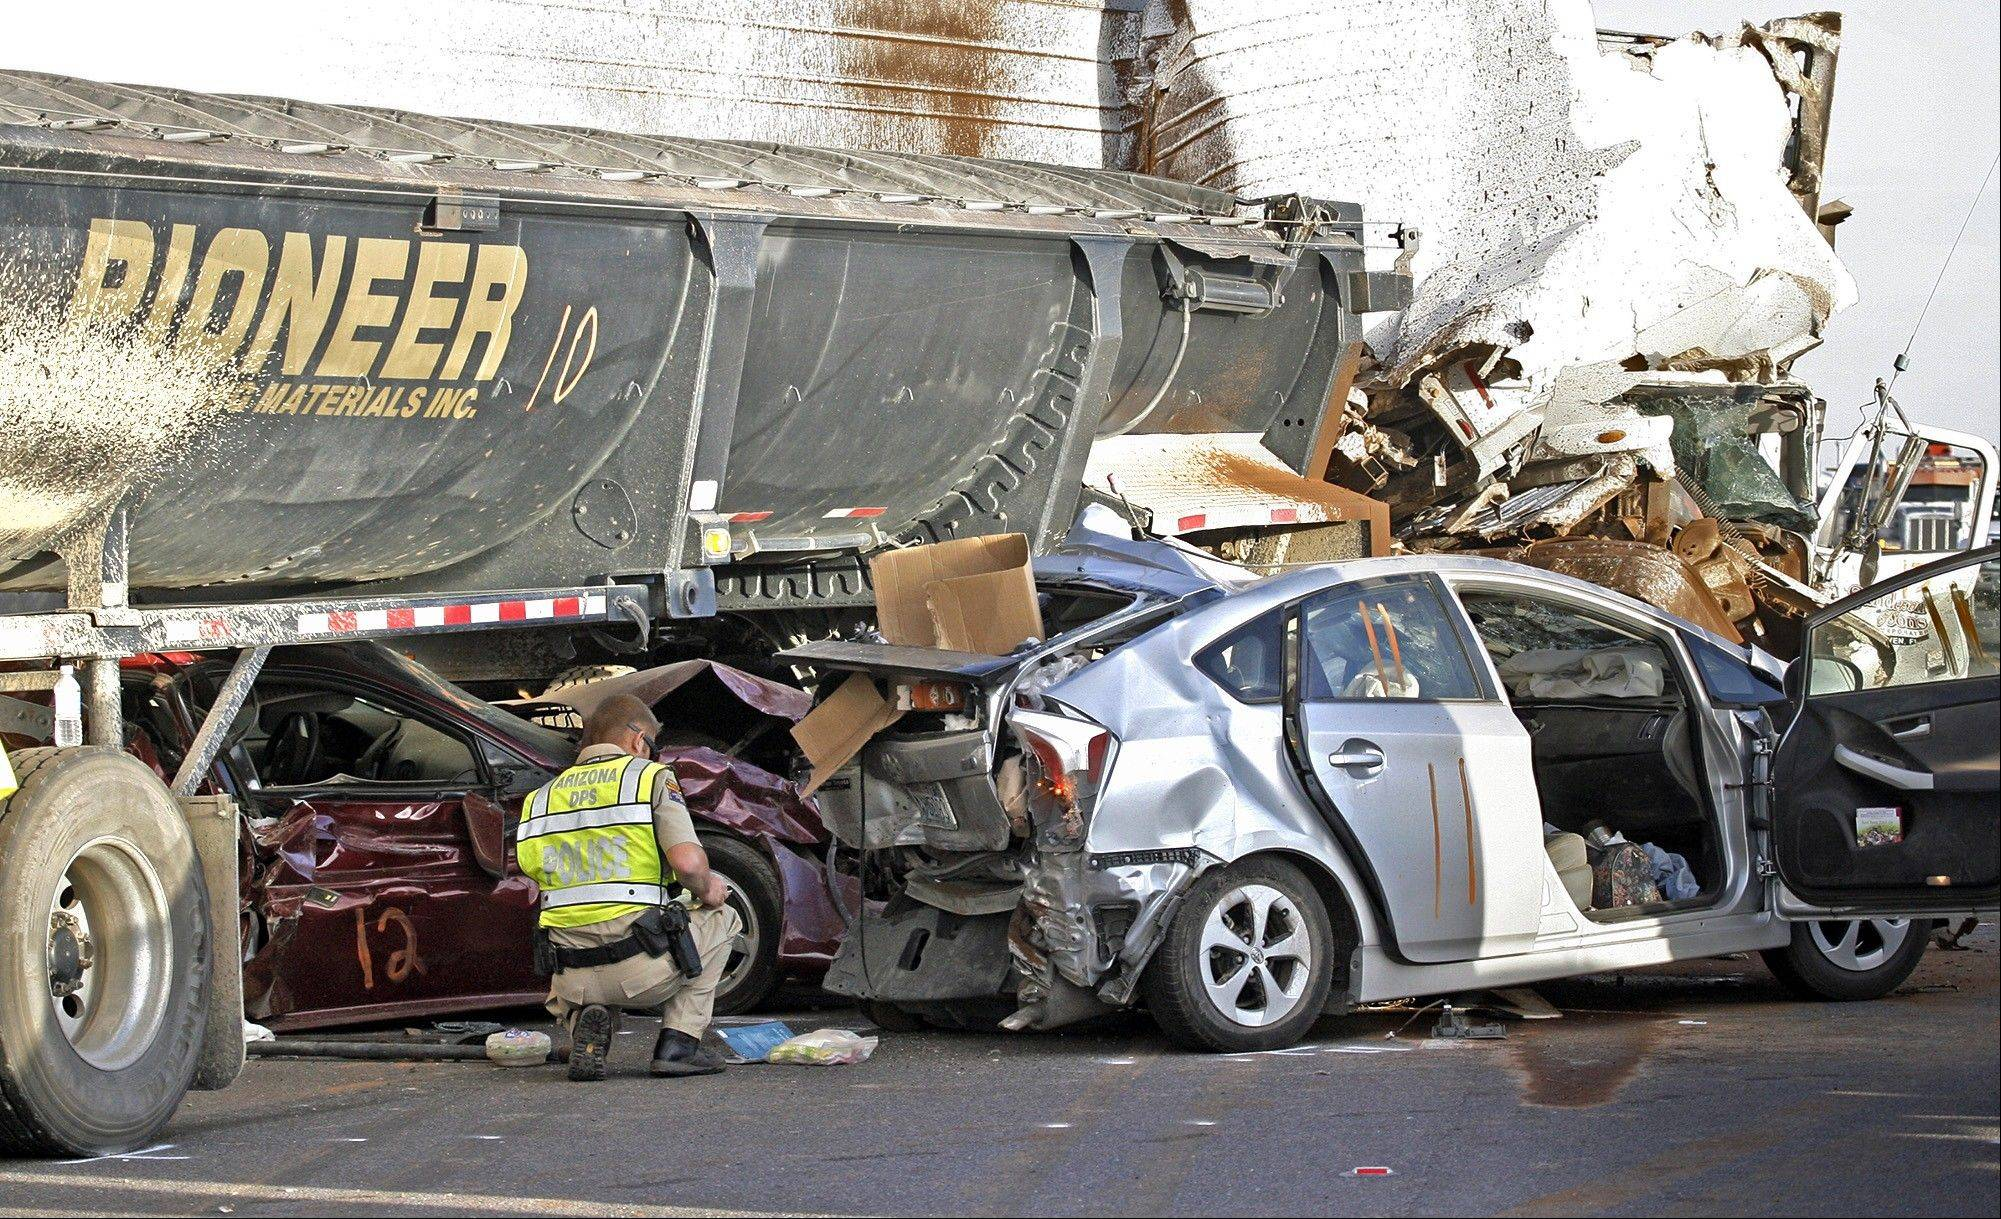 Arizona Department of Public Safety officers investigate a multiple fatality accident involving six semi tractor-trailers and 19 other vehicles in the eastbound lanes of Interstate 10 south of Casa Grande, Ariz., on Tuesday, Oct. 29, 2013. Authorities say three people are dead and at least 12 others injured after a dust storm led to chain-reaction collisions.